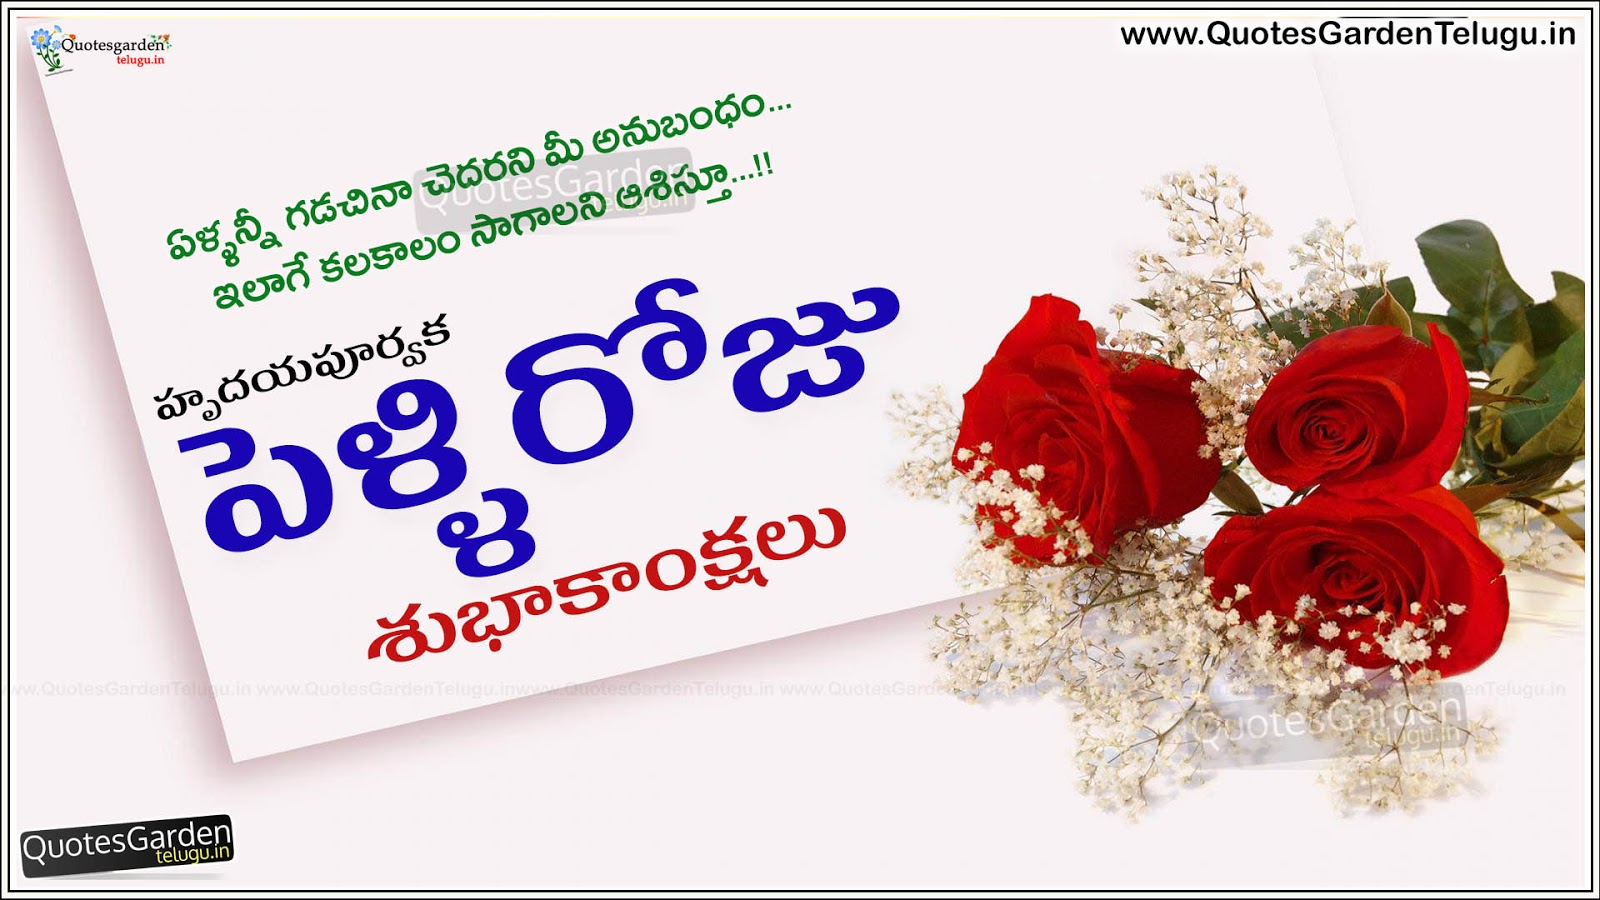 Happy marriage day greetings wishes in telugu quotes garden telugu happy marriage day greetings wishes in telugu kristyandbryce Gallery